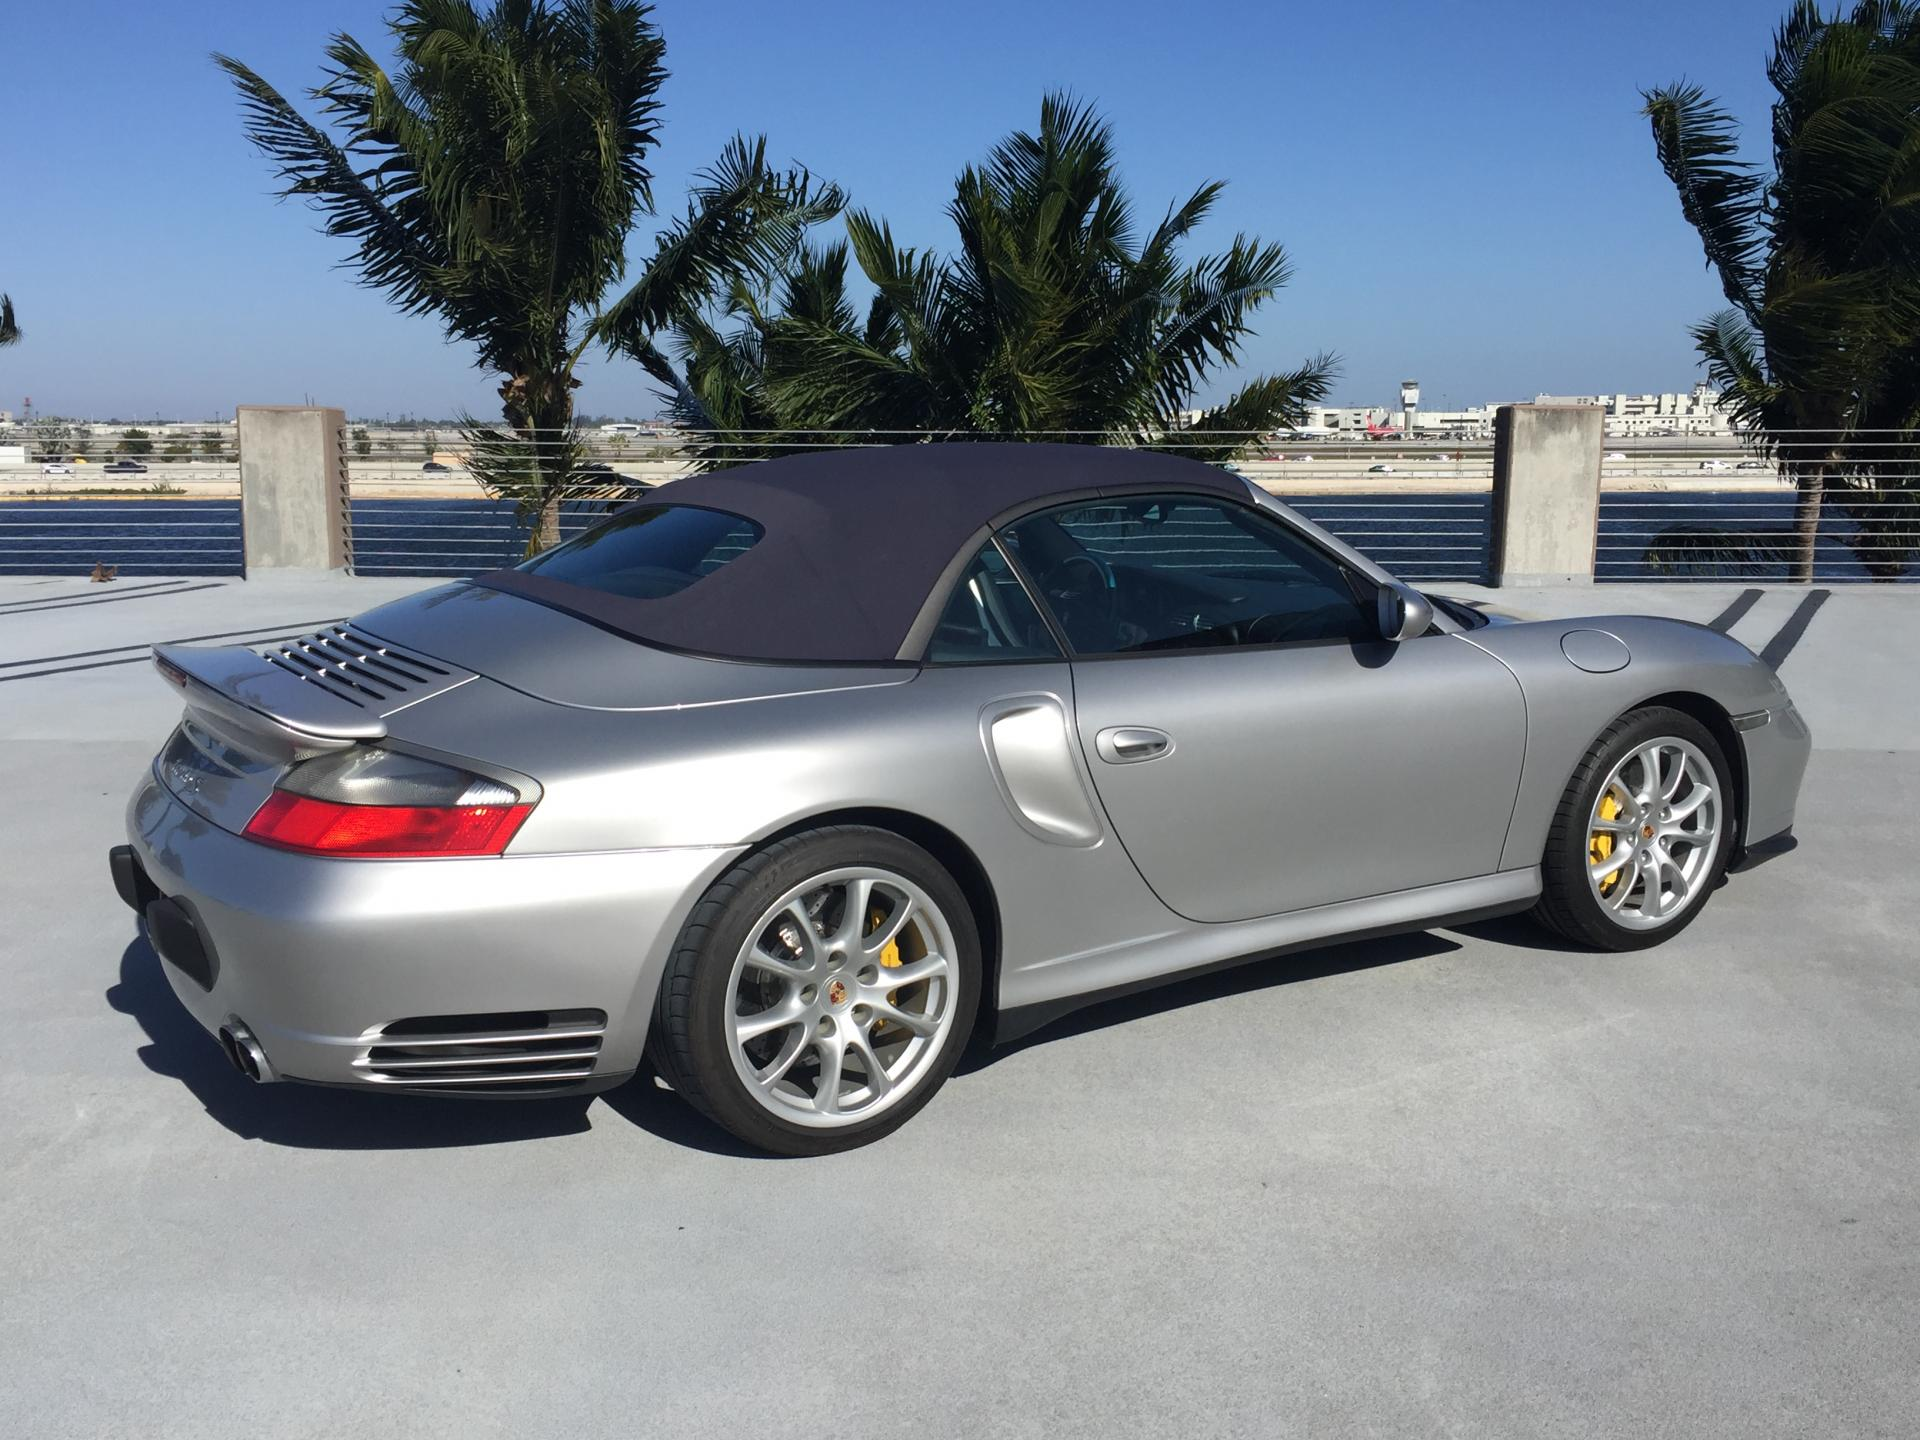 996 Turbo S Cabriolet